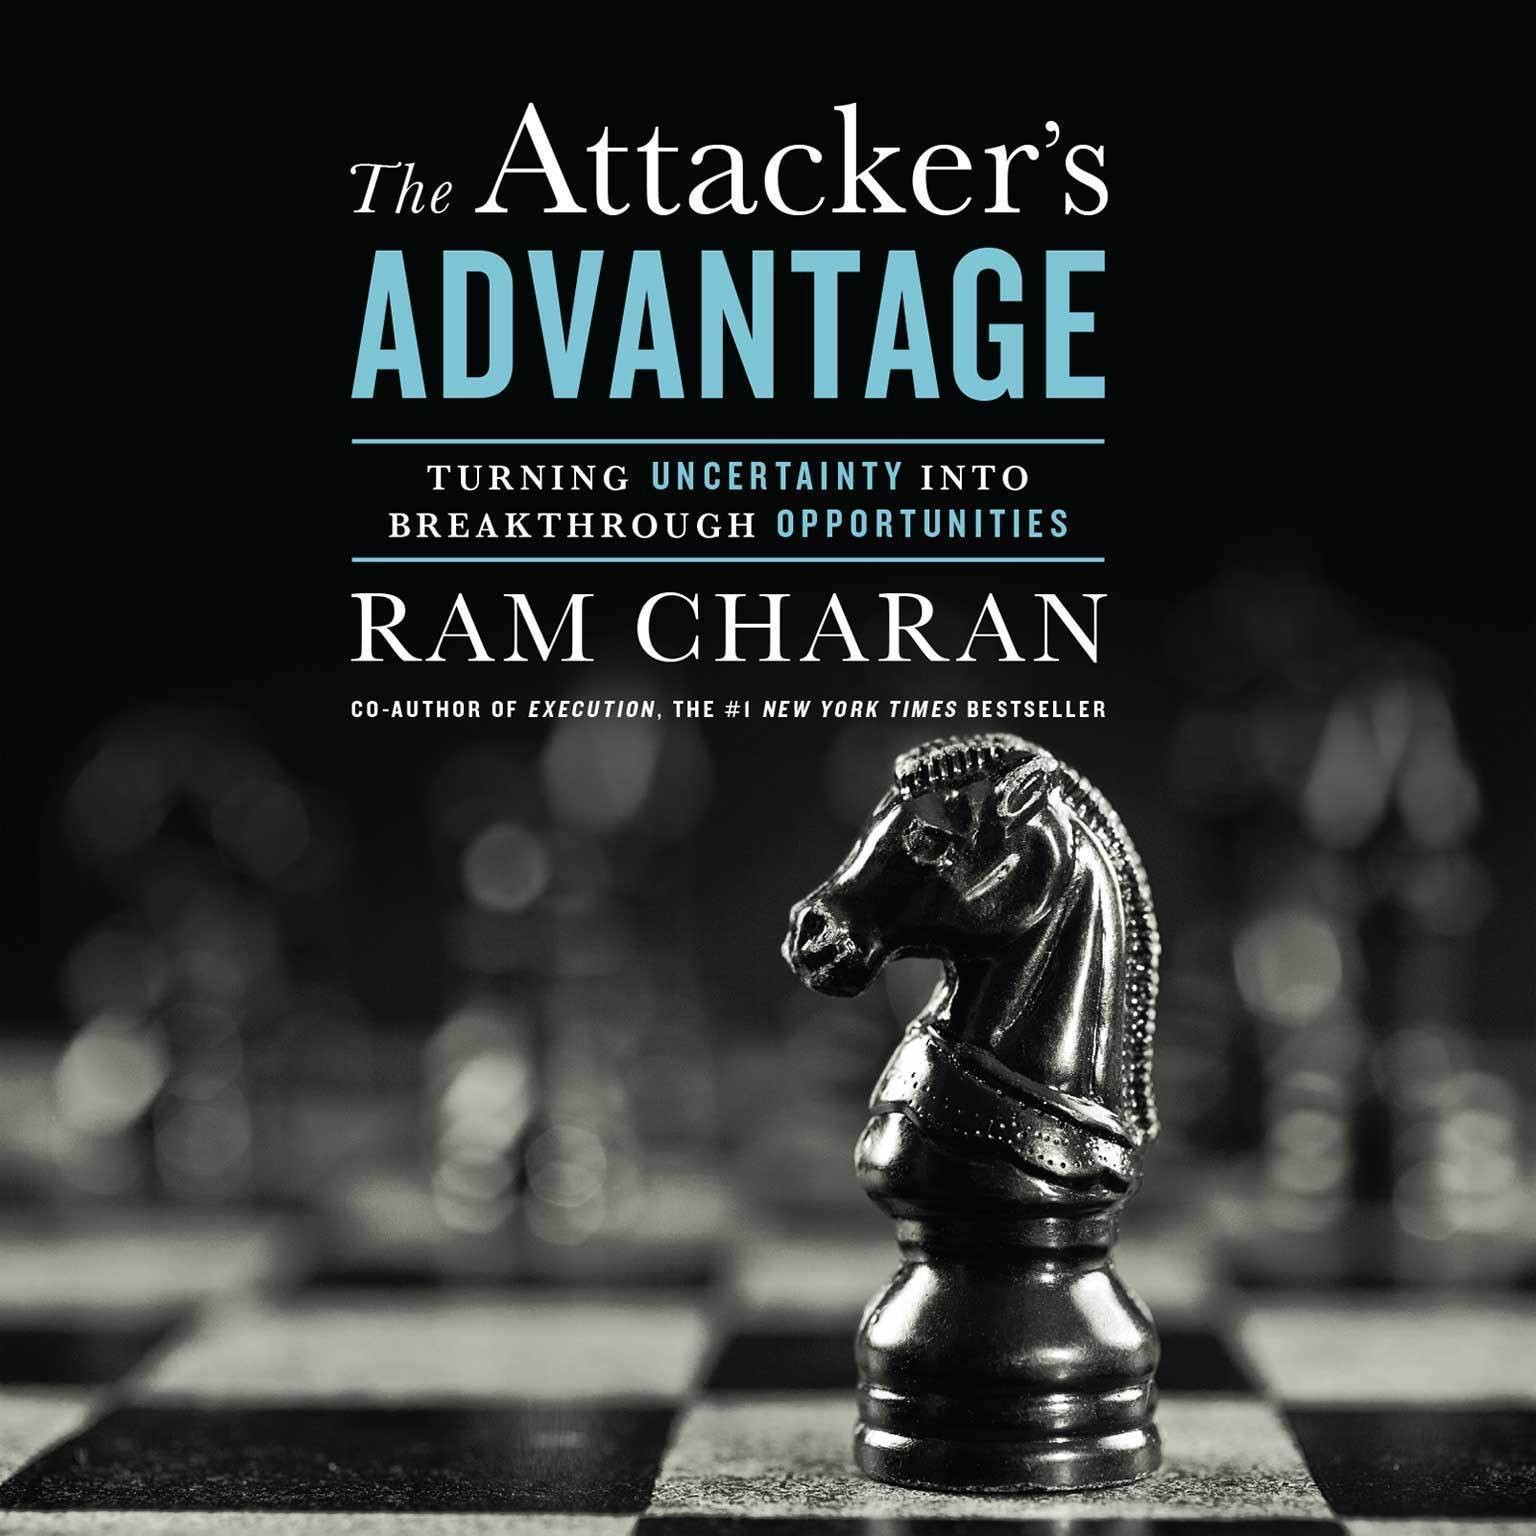 Printable The Attacker's Advantage: Uncertainty's Upside Audiobook Cover Art